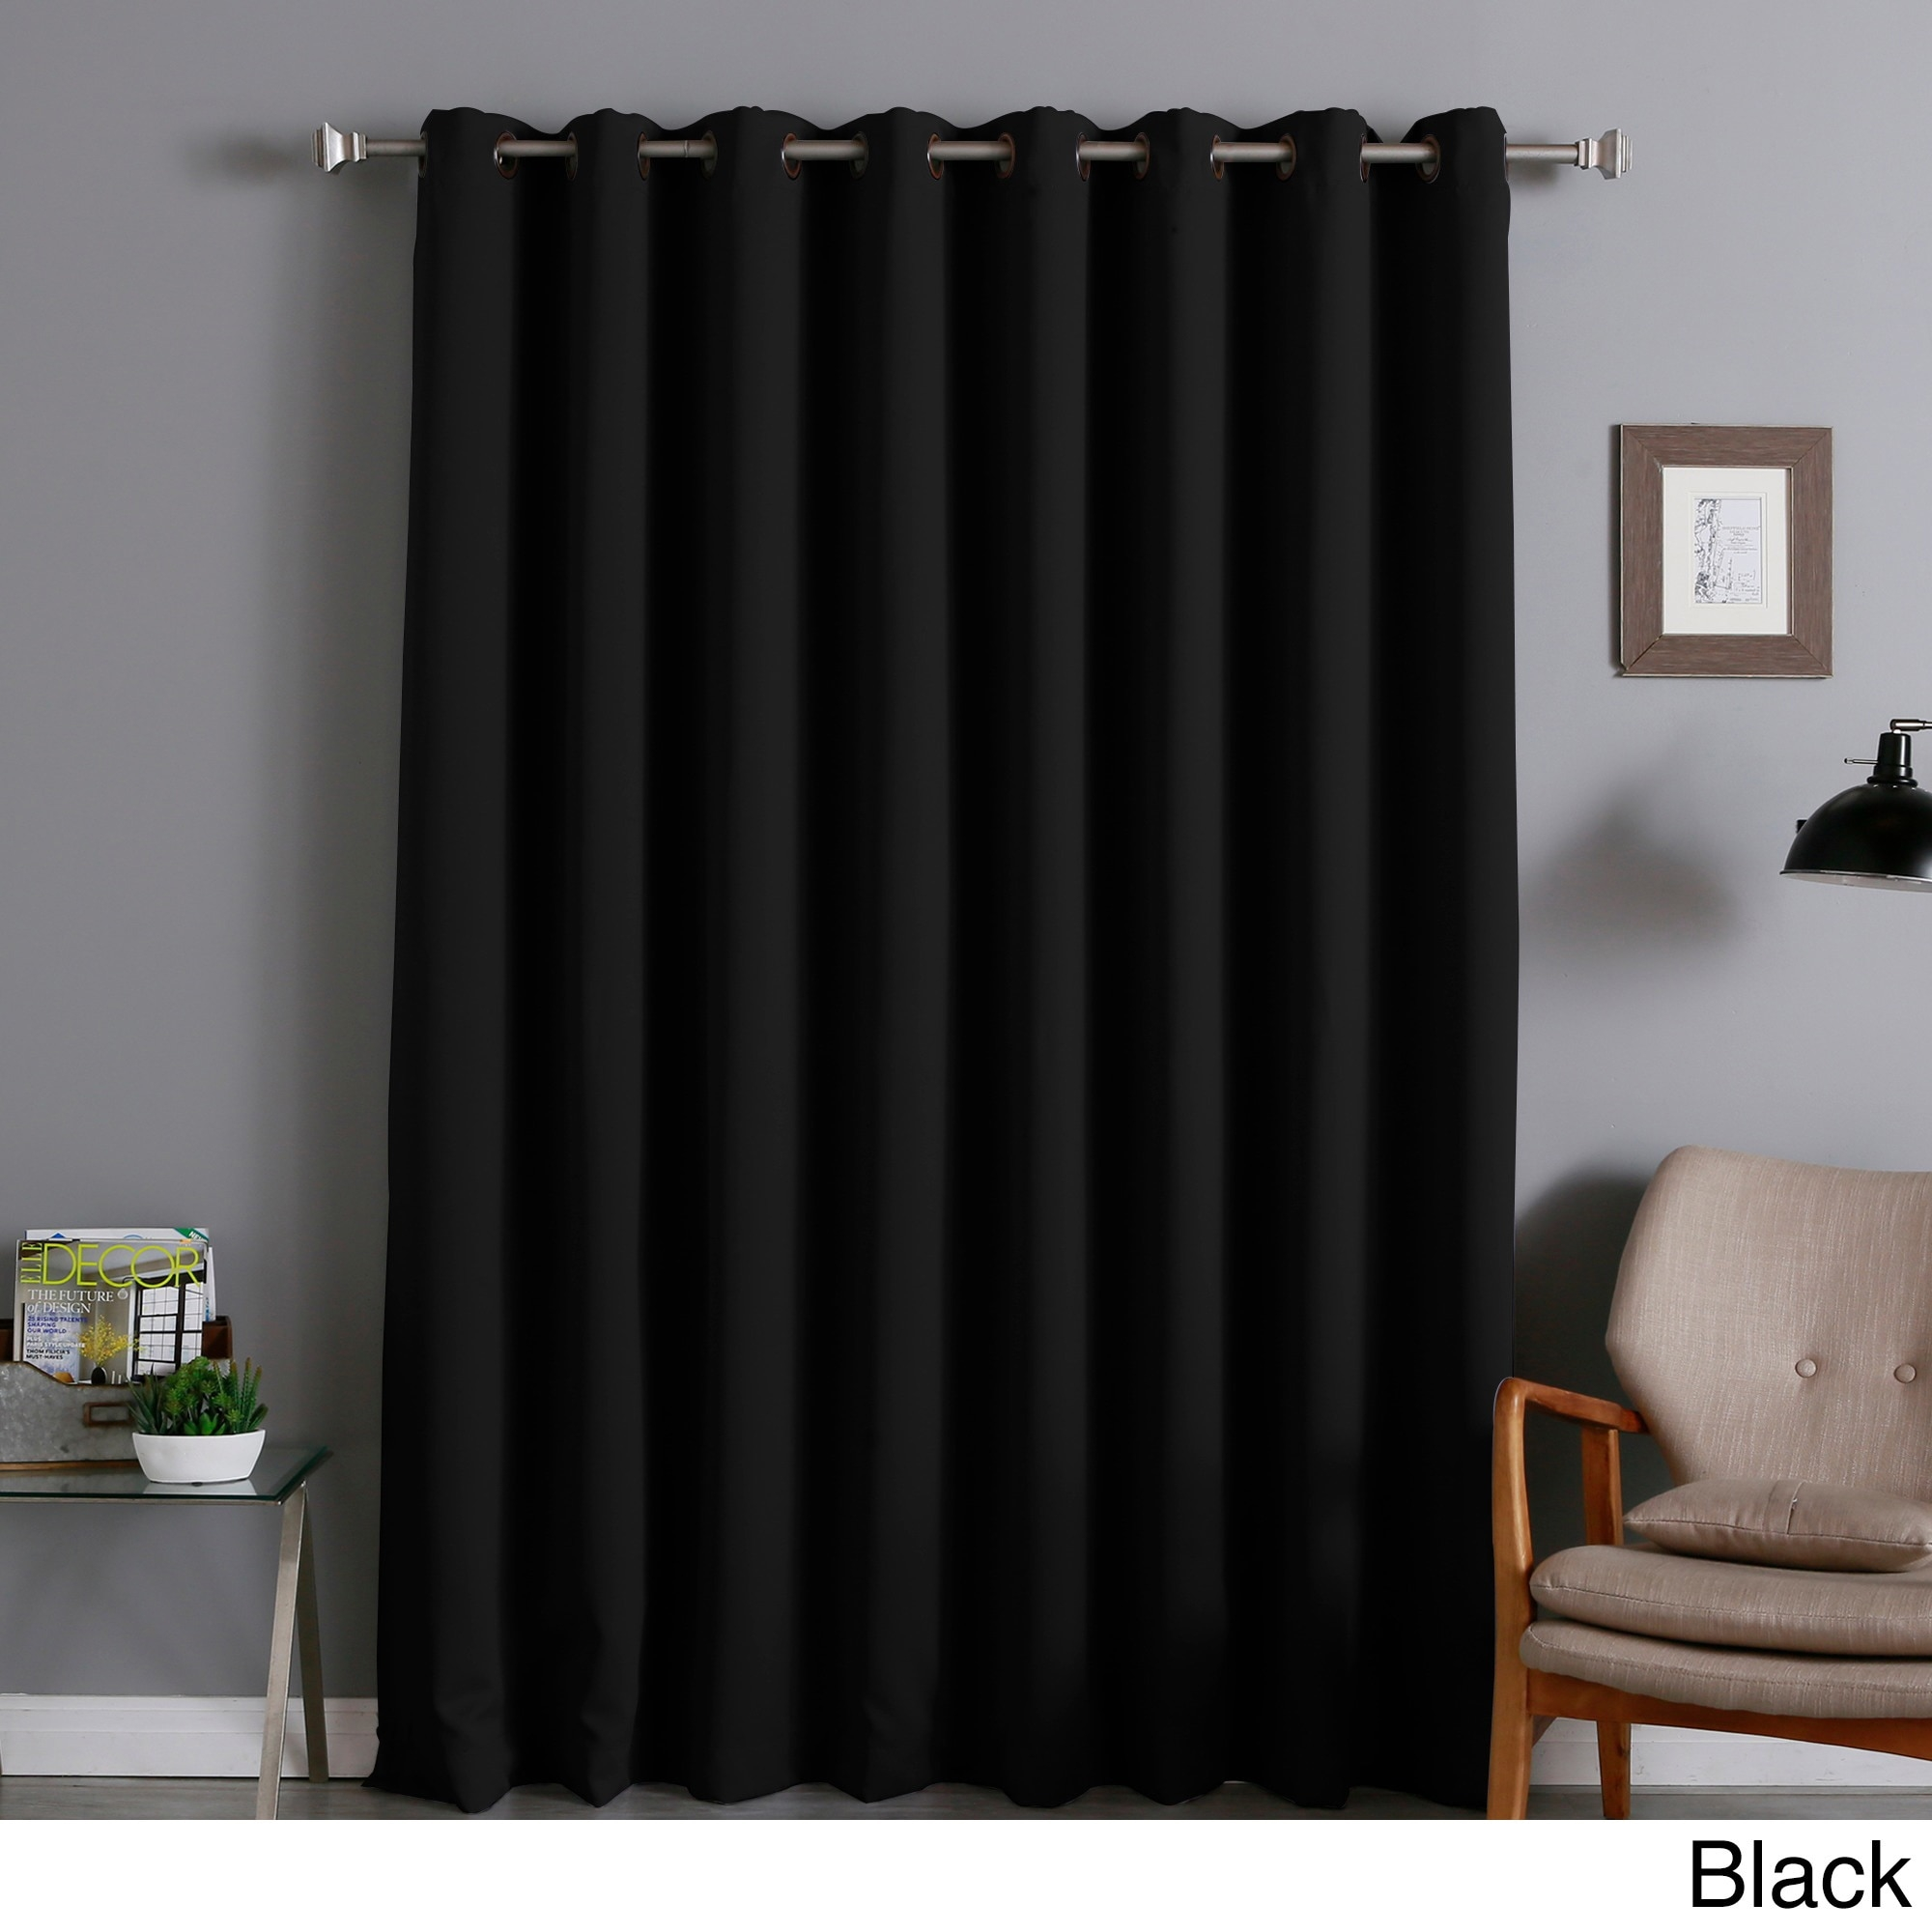 Aurora Home Extra Wide Thermal 96 Inch Blackout Curtain Panel Pertaining To Extra Wide Thermal Curtains (Image 4 of 15)